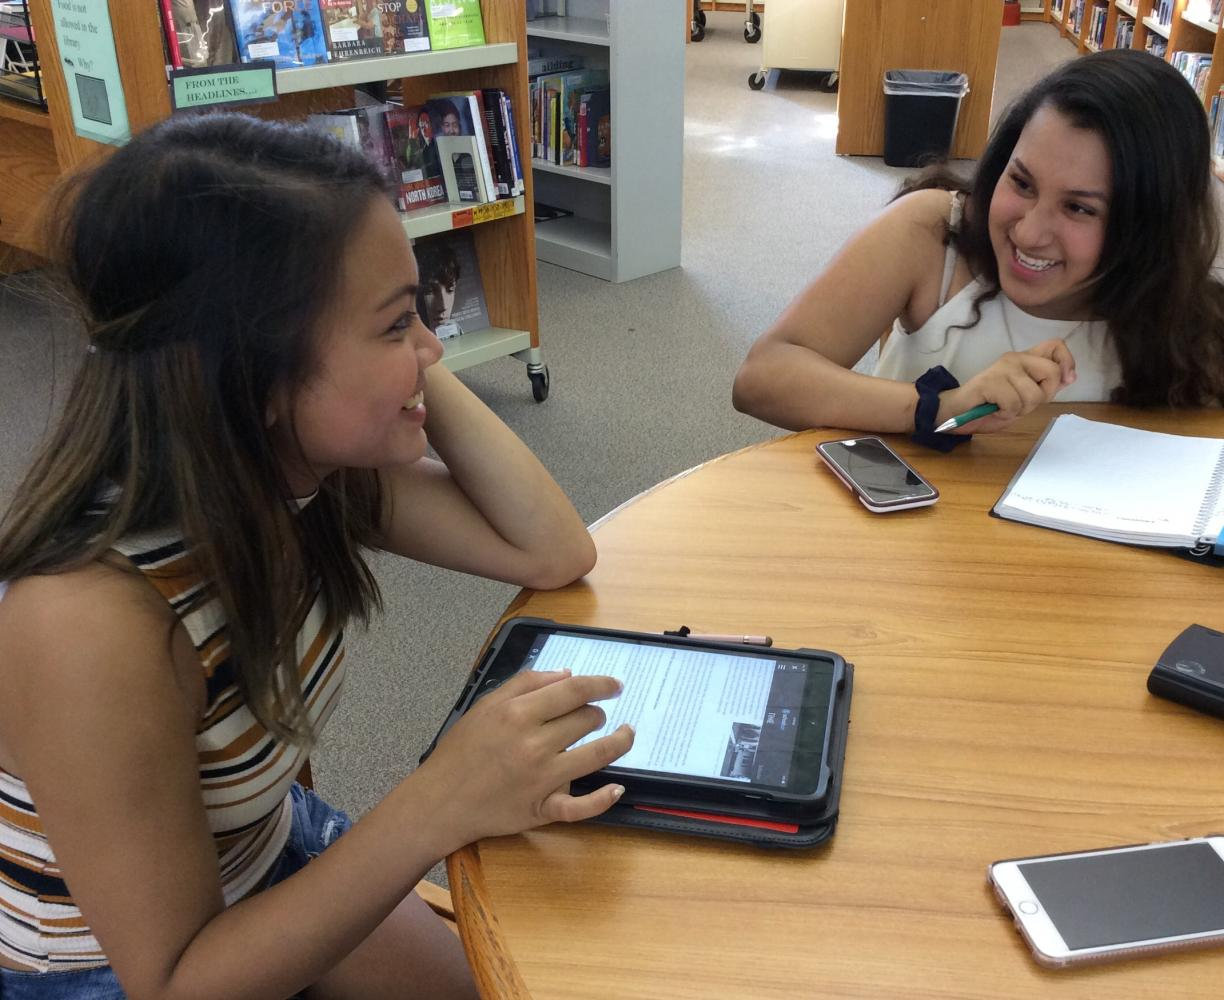 Two friends enjoy hanging out in the library.